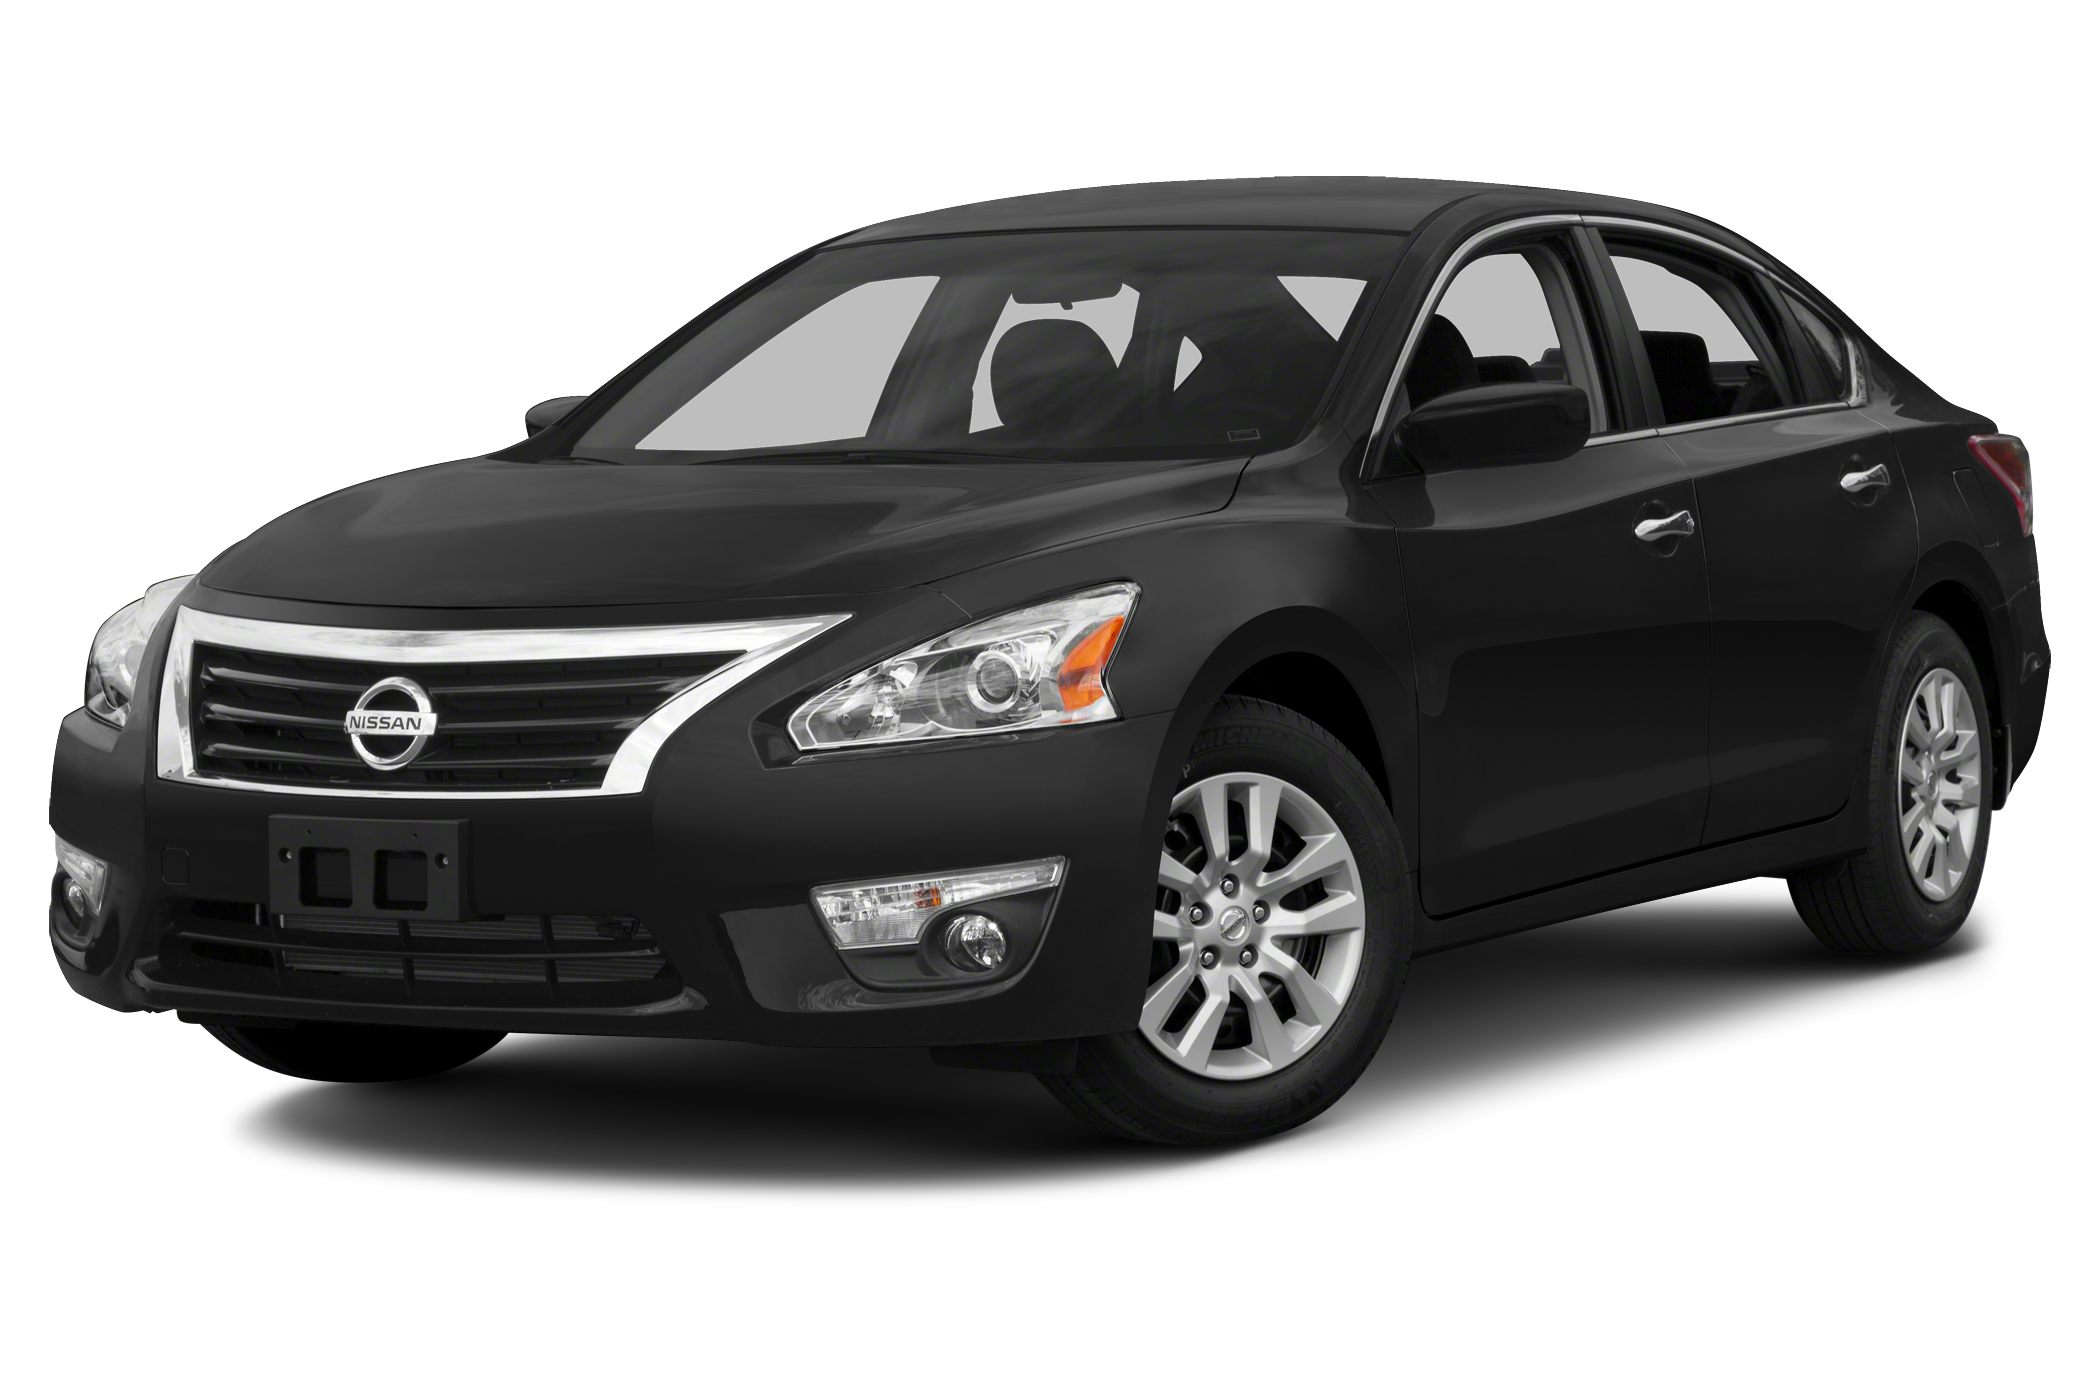 2015 Nissan Altima 2.5 S Sedan for sale in Webster for $20,376 with 2 miles.